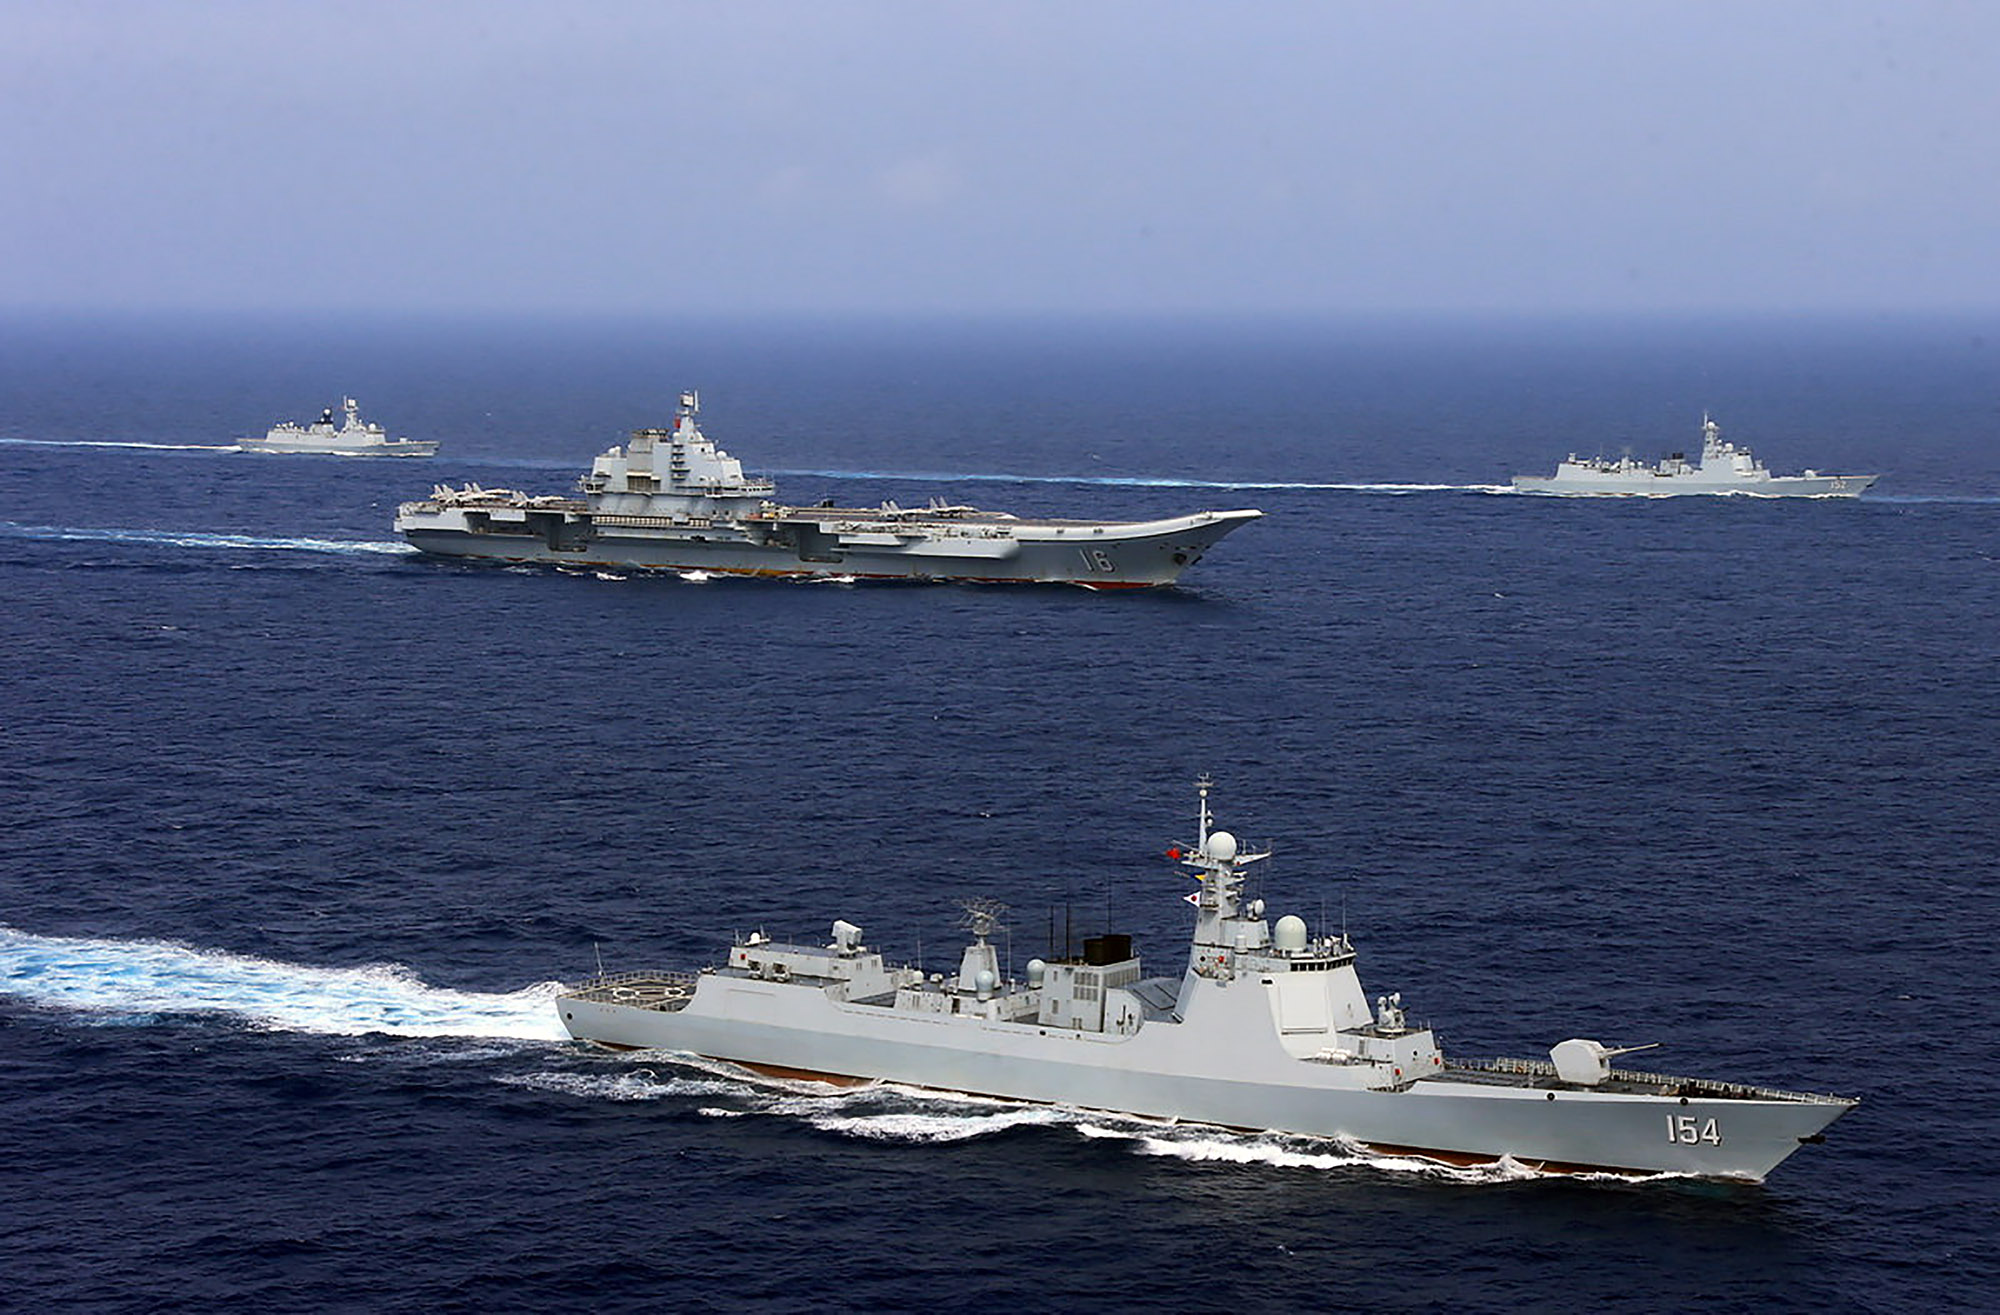 Chinas New Map Aims To Extend South China Sea Claims